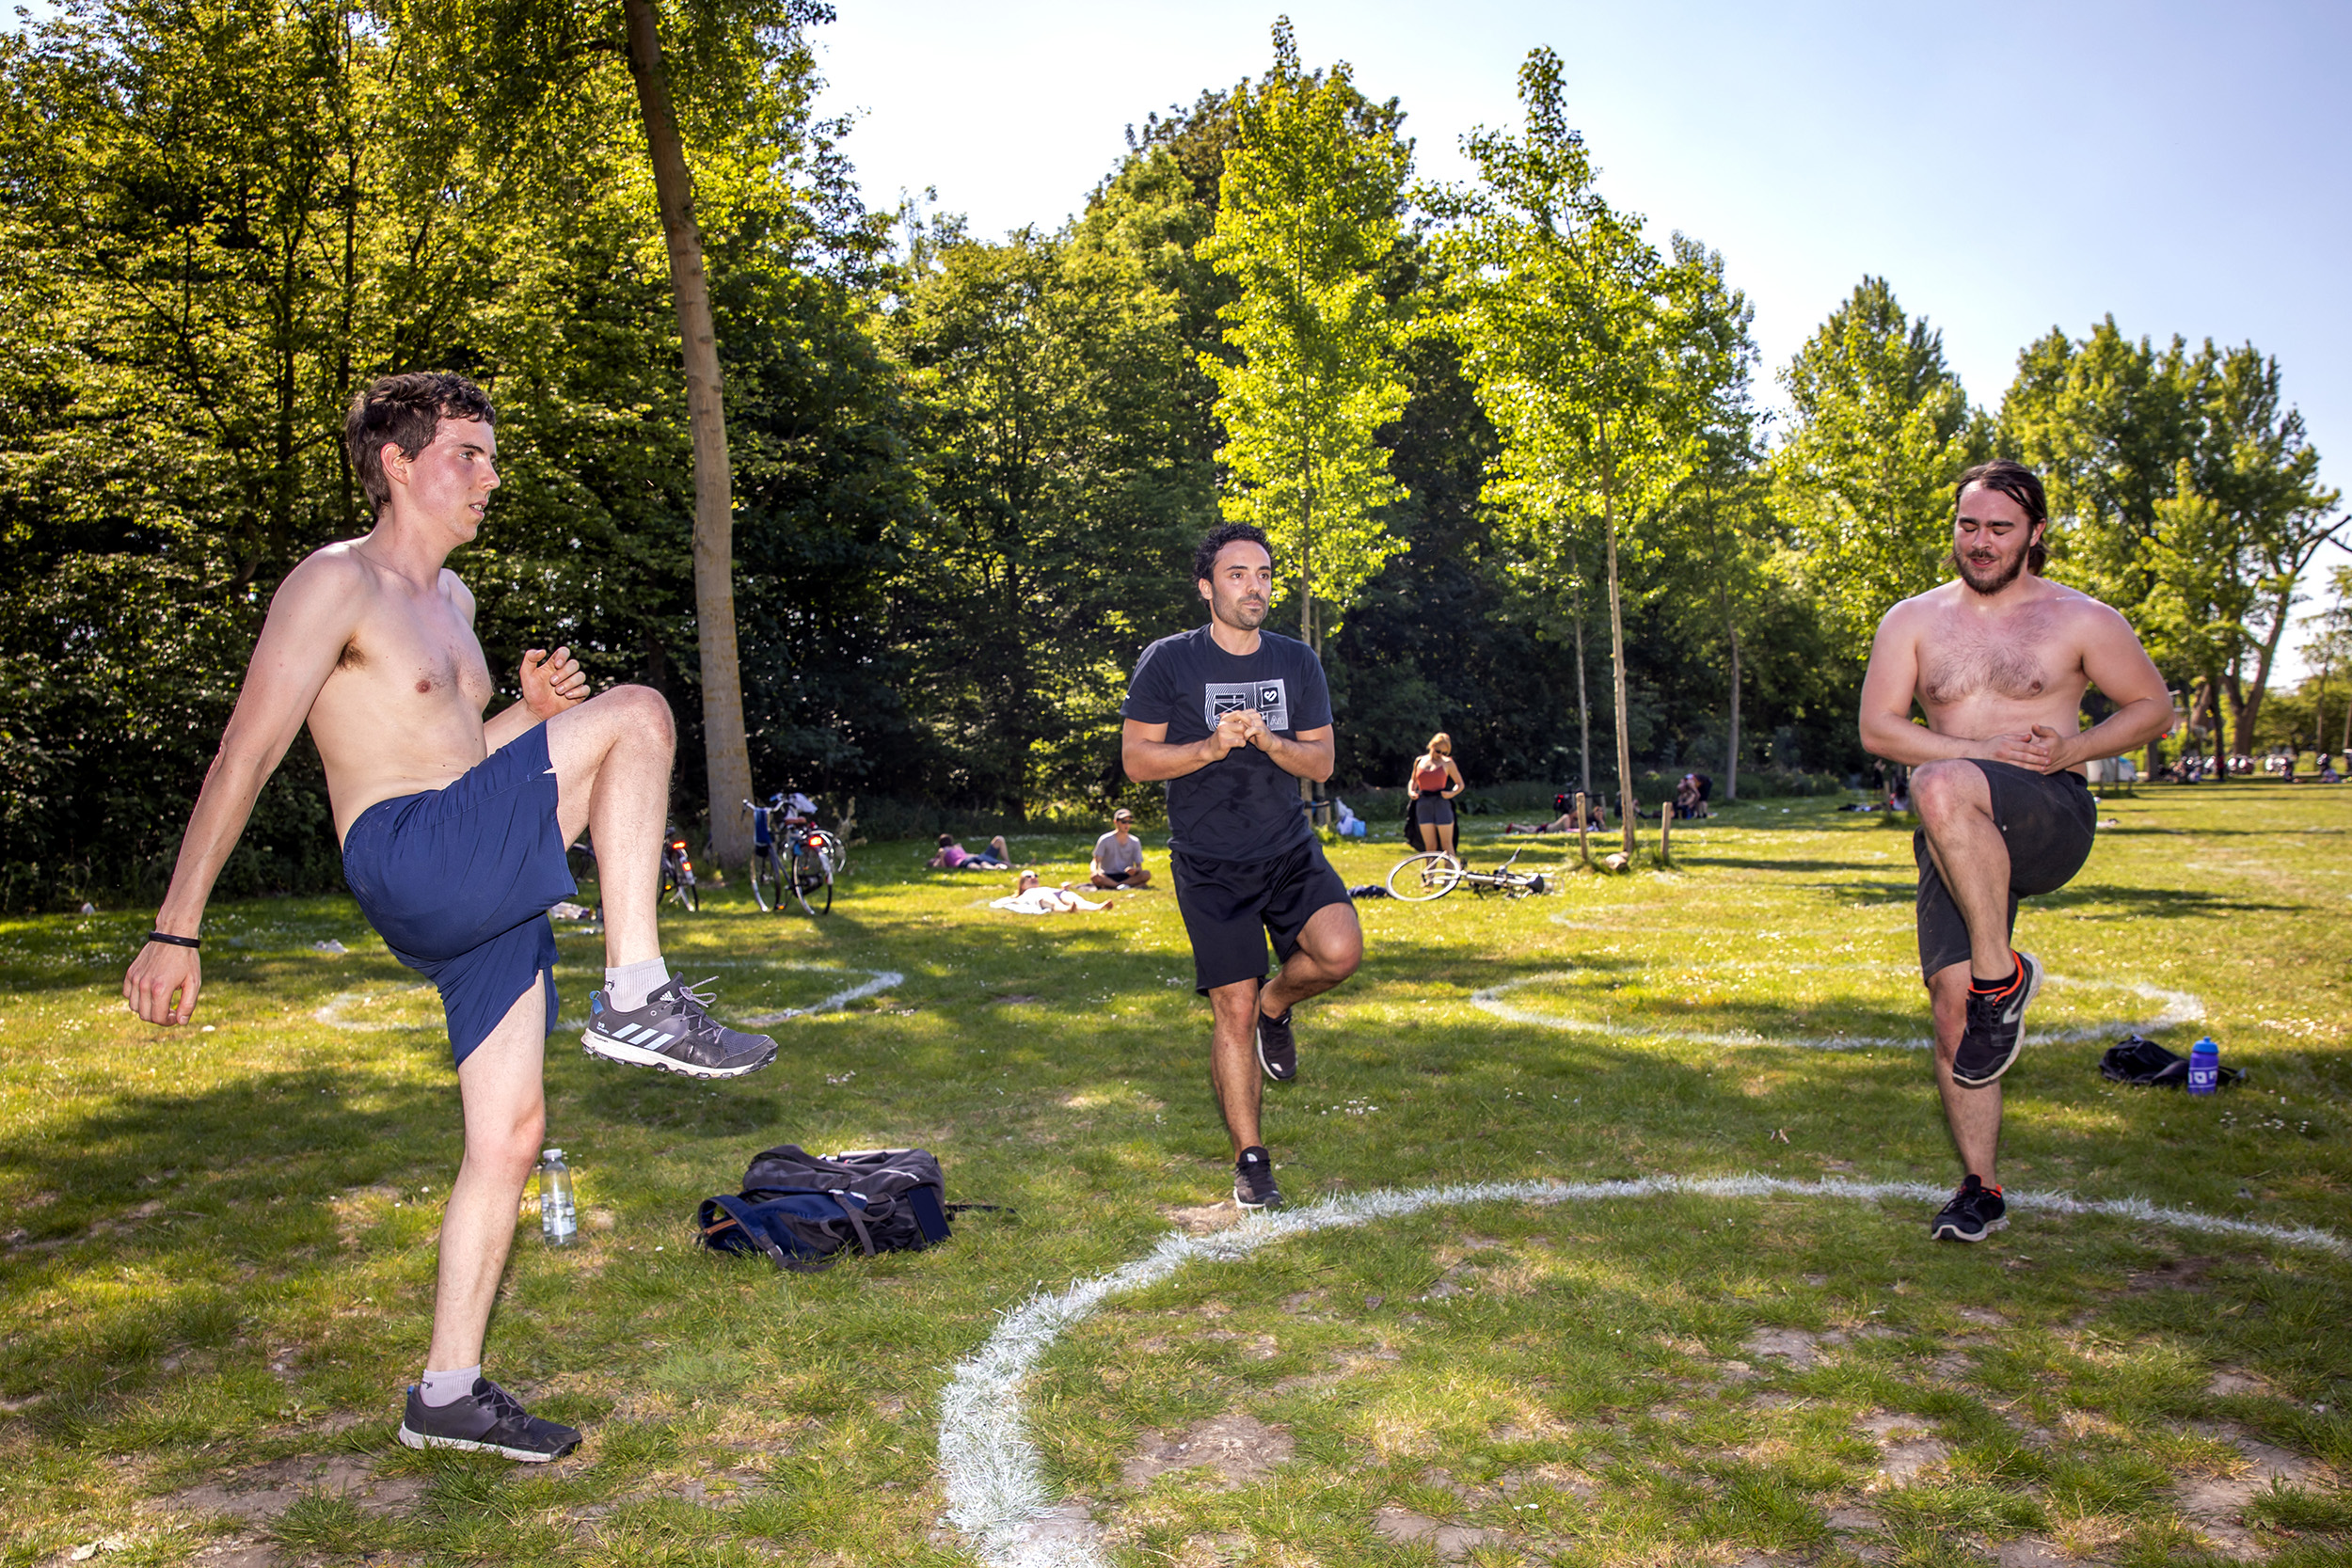 coro-a sport lockdown workout fitness oefeningen fitboys high knees park